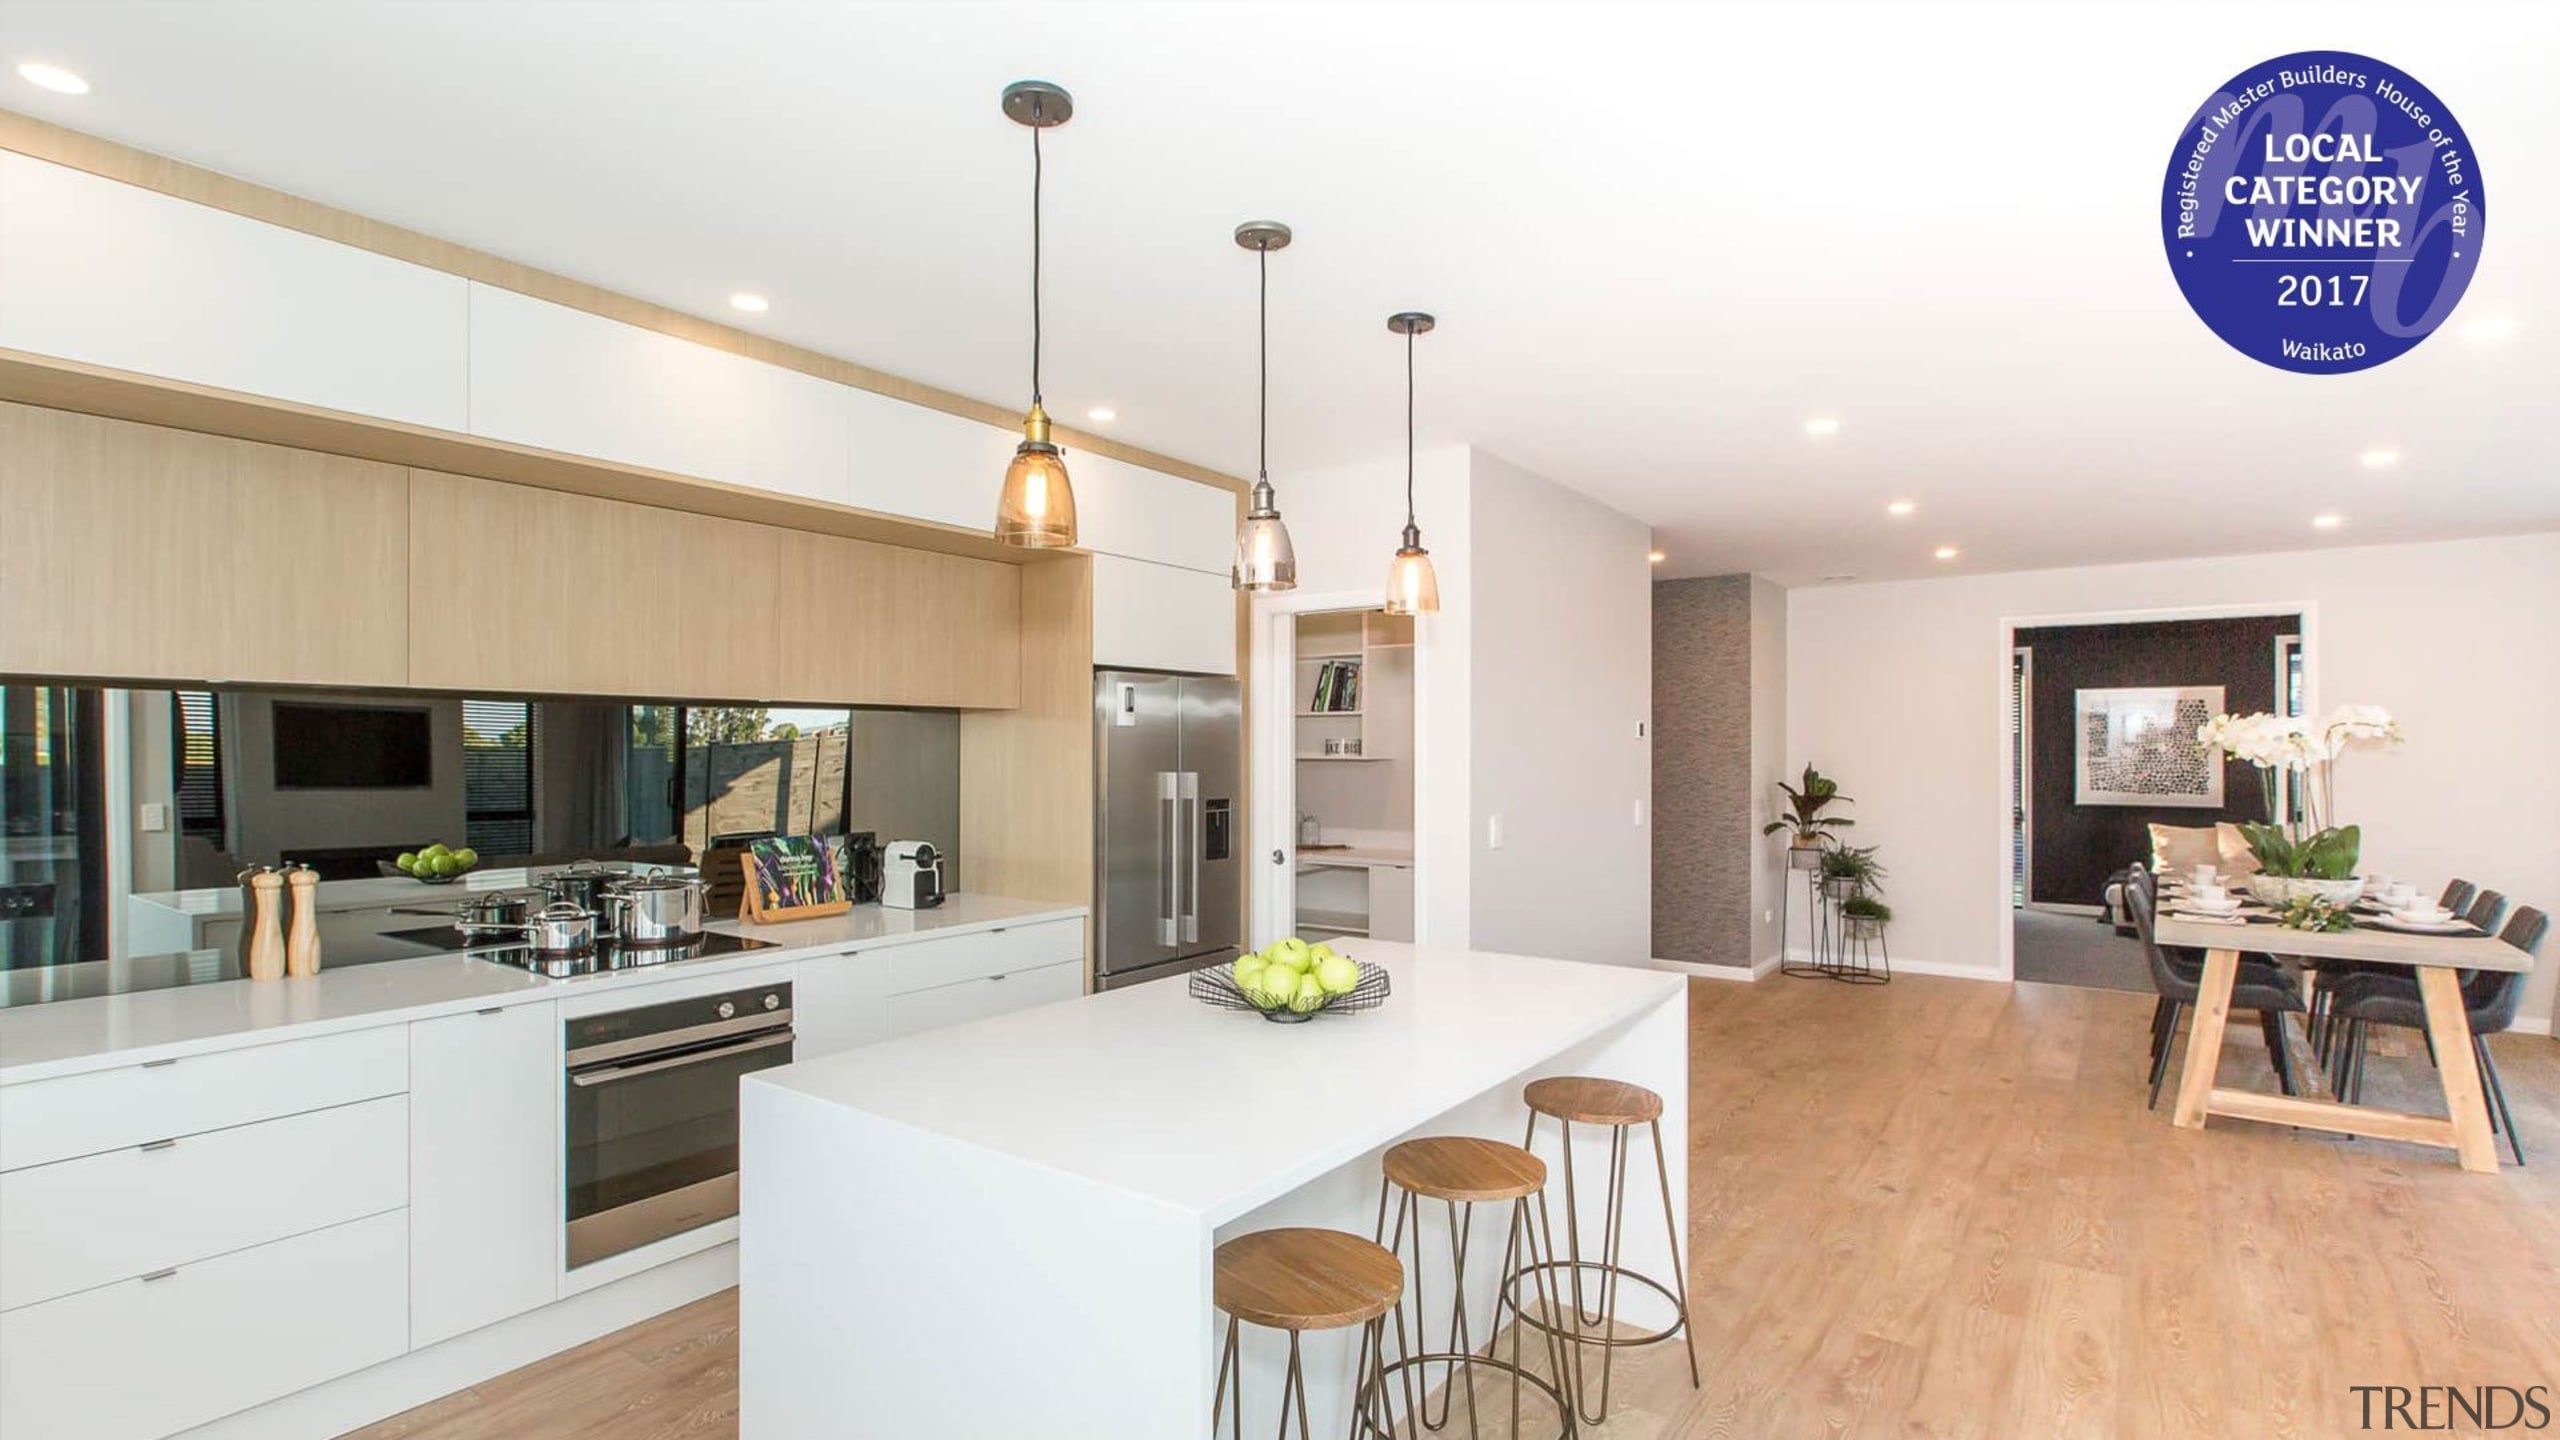 Kitchen and living areas are open plan - countertop, interior design, kitchen, property, real estate, white